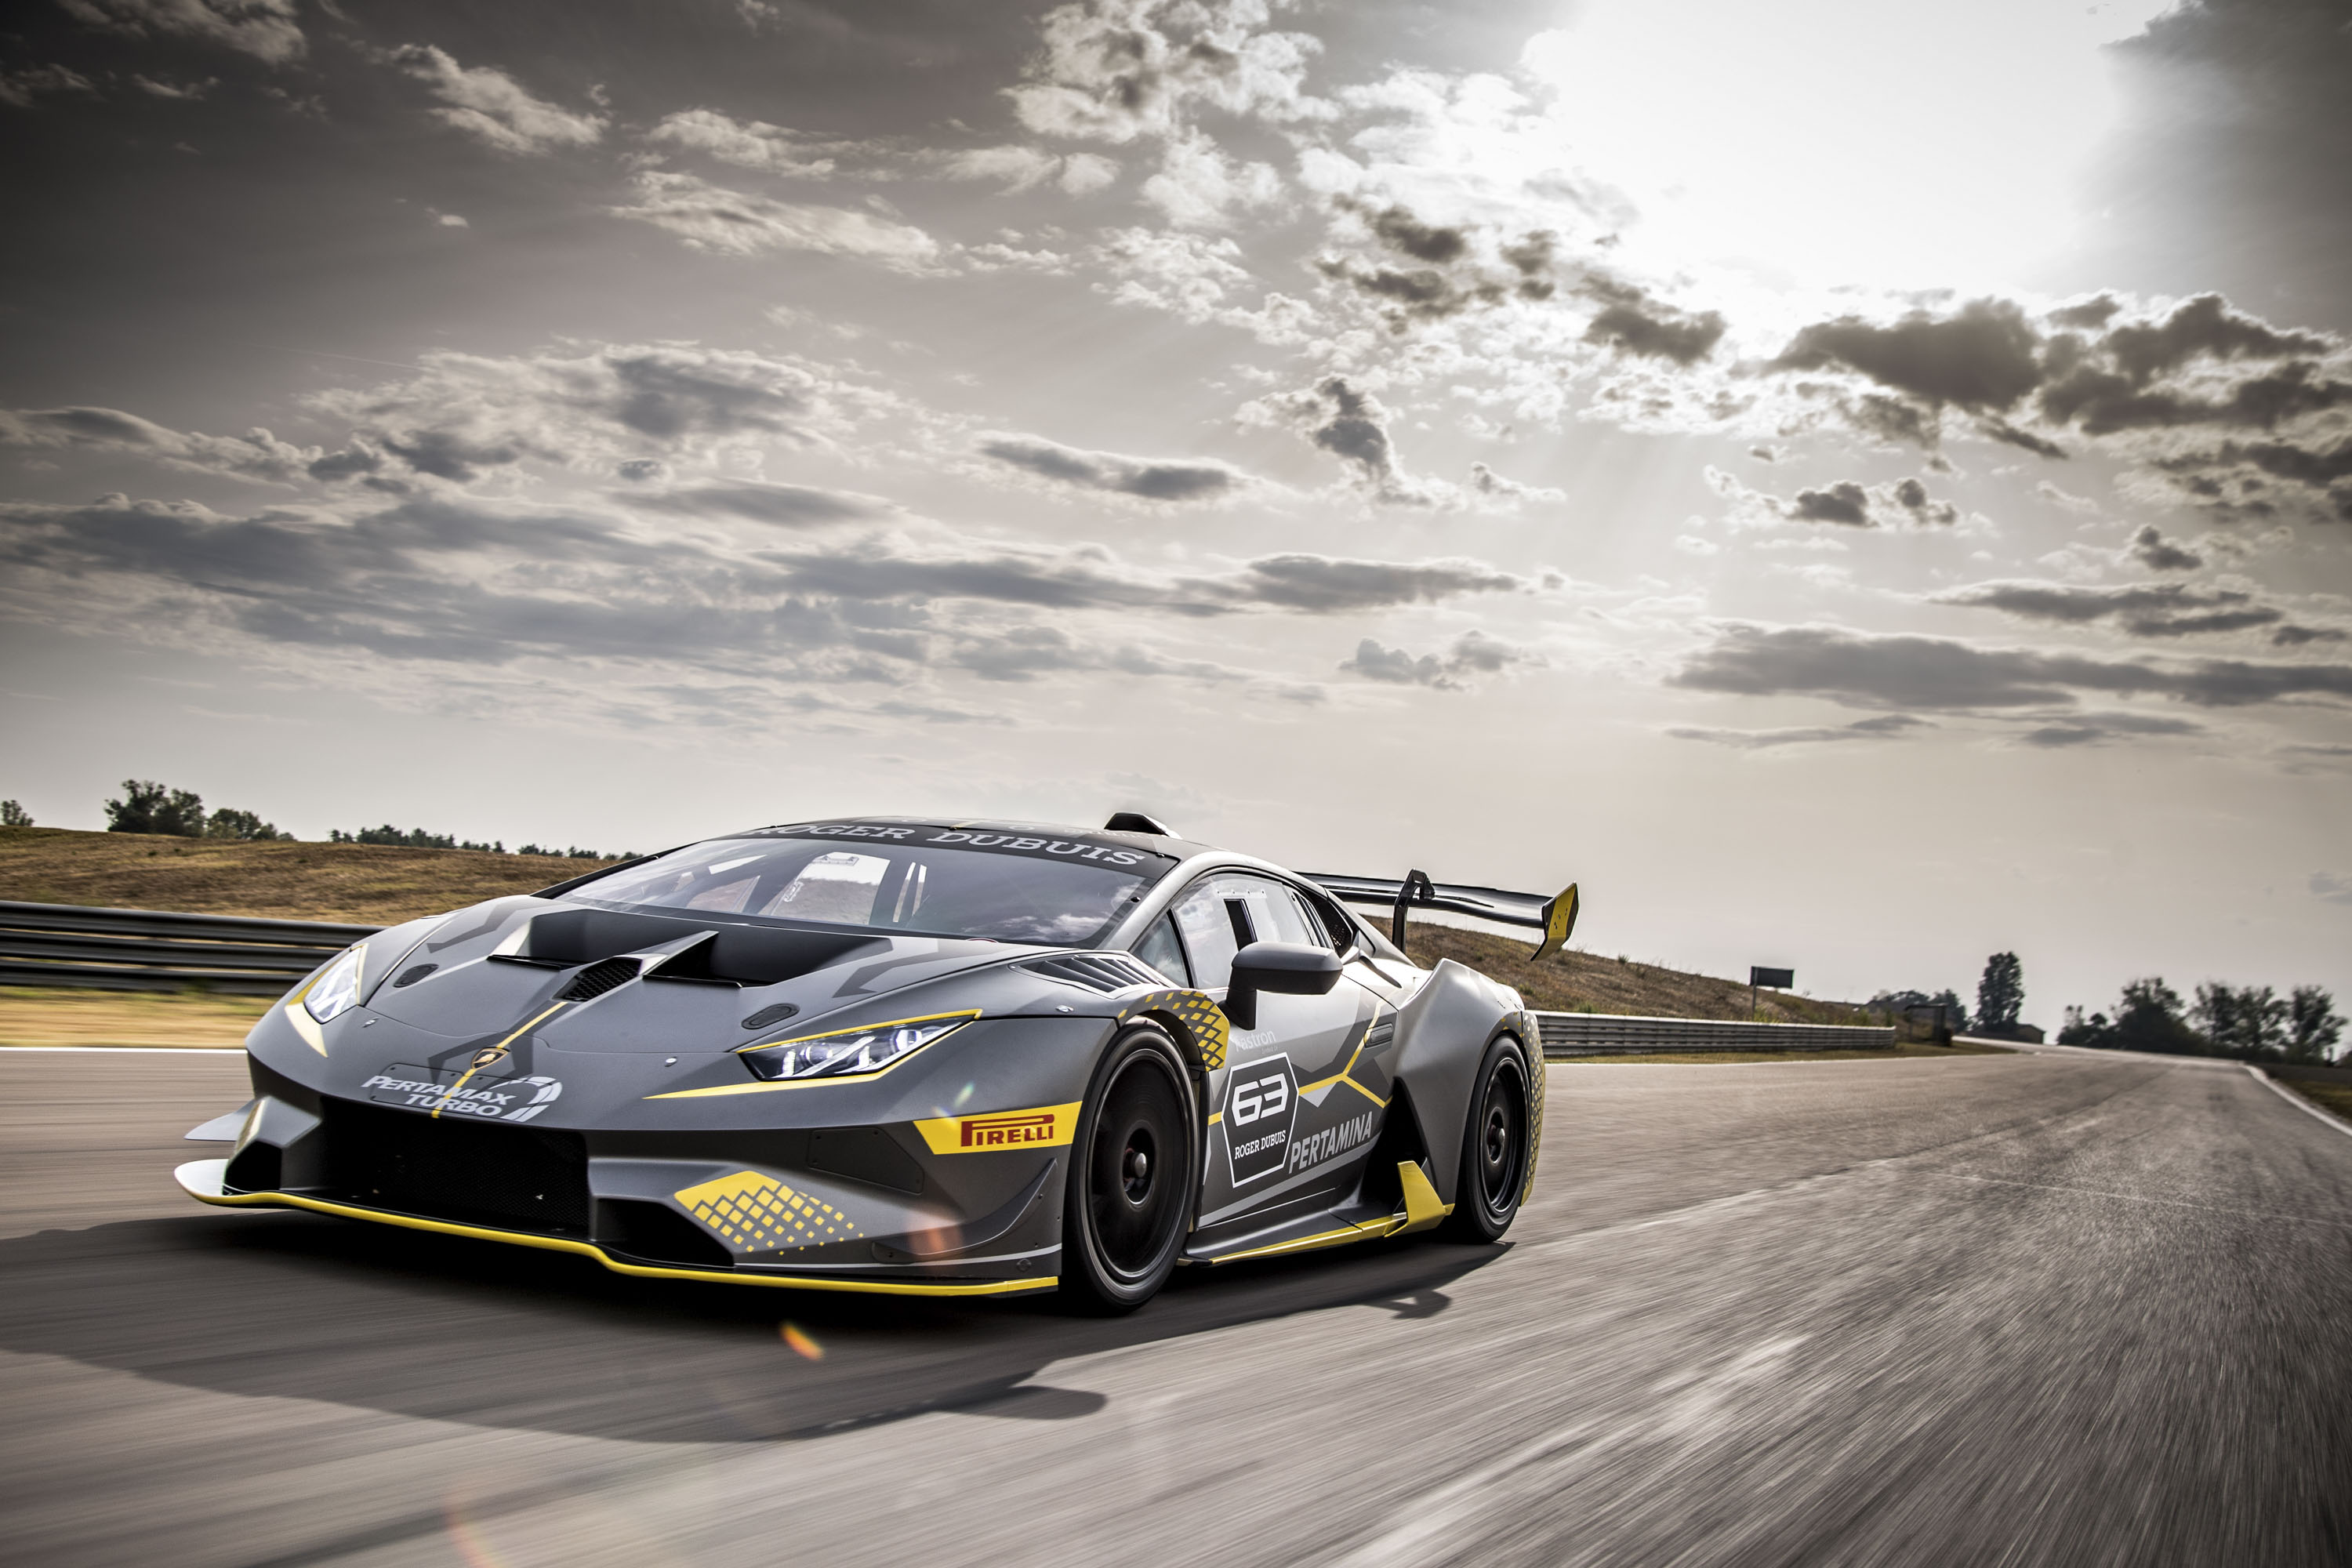 2018 Lamborghini Huracan Super Trofeo Evo Top Speed